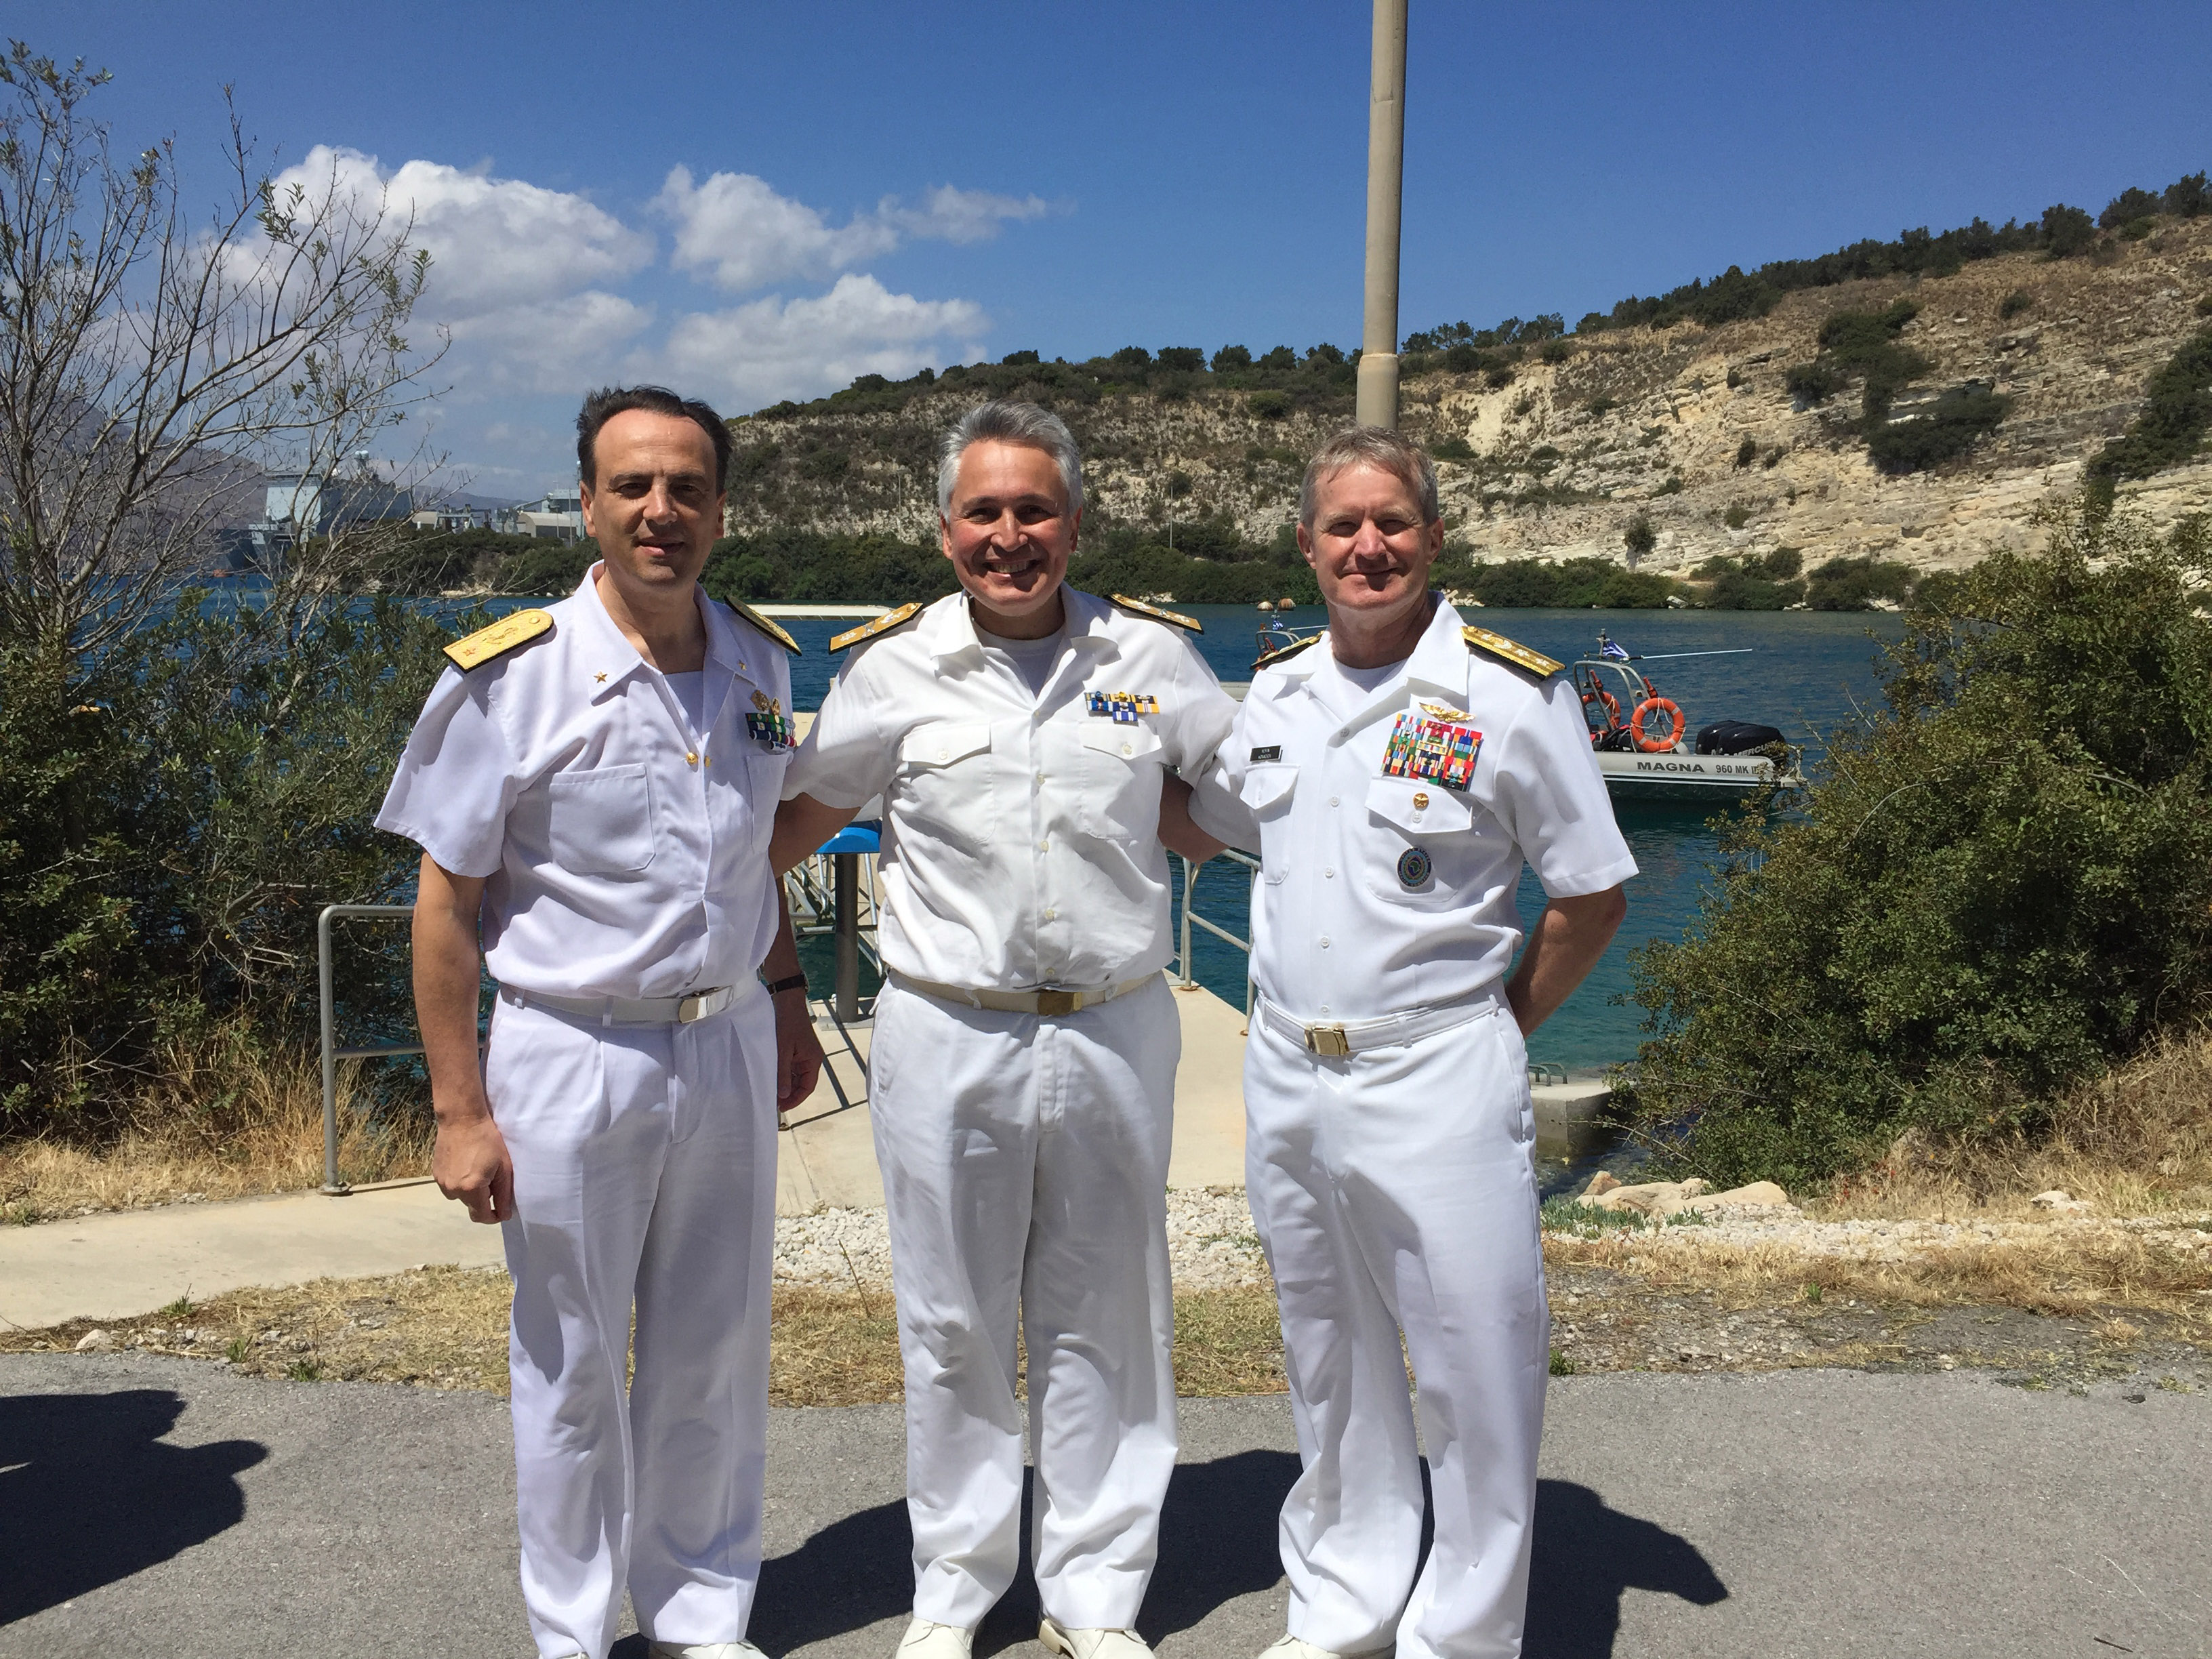 160517-N-VK993-001 SOUDA BAY, Greece (May 17, 2016)  Rear Adm. Kevin Kovacich, Director of Strategy, Plans, and programs, U.S. Africa Command, and Italian Navy Rear Adm. Alberto Maffeis, Commander Patrol Forces Italy joined with Hellenic Navy Commodore Georgios Tsogkas, Commandant of NATO Maritime Interdiction Operational Training Center for a tour of Naval Support Activity Souda Bay as part of exercise Phoenix Express 2016 opening ceremony May 17. Phoenix Express 2016, sponsored and facilitated by U.S Africa Command, is designed to improve regional cooperation, increase maritime domain awareness, information-sharing practices, and operational capabilities to enhance efforts to achieve safety and security in the Mediterranean Sea. (U.S. Navy photo by Lieutenant Junior Grade Jill Brown/Released)